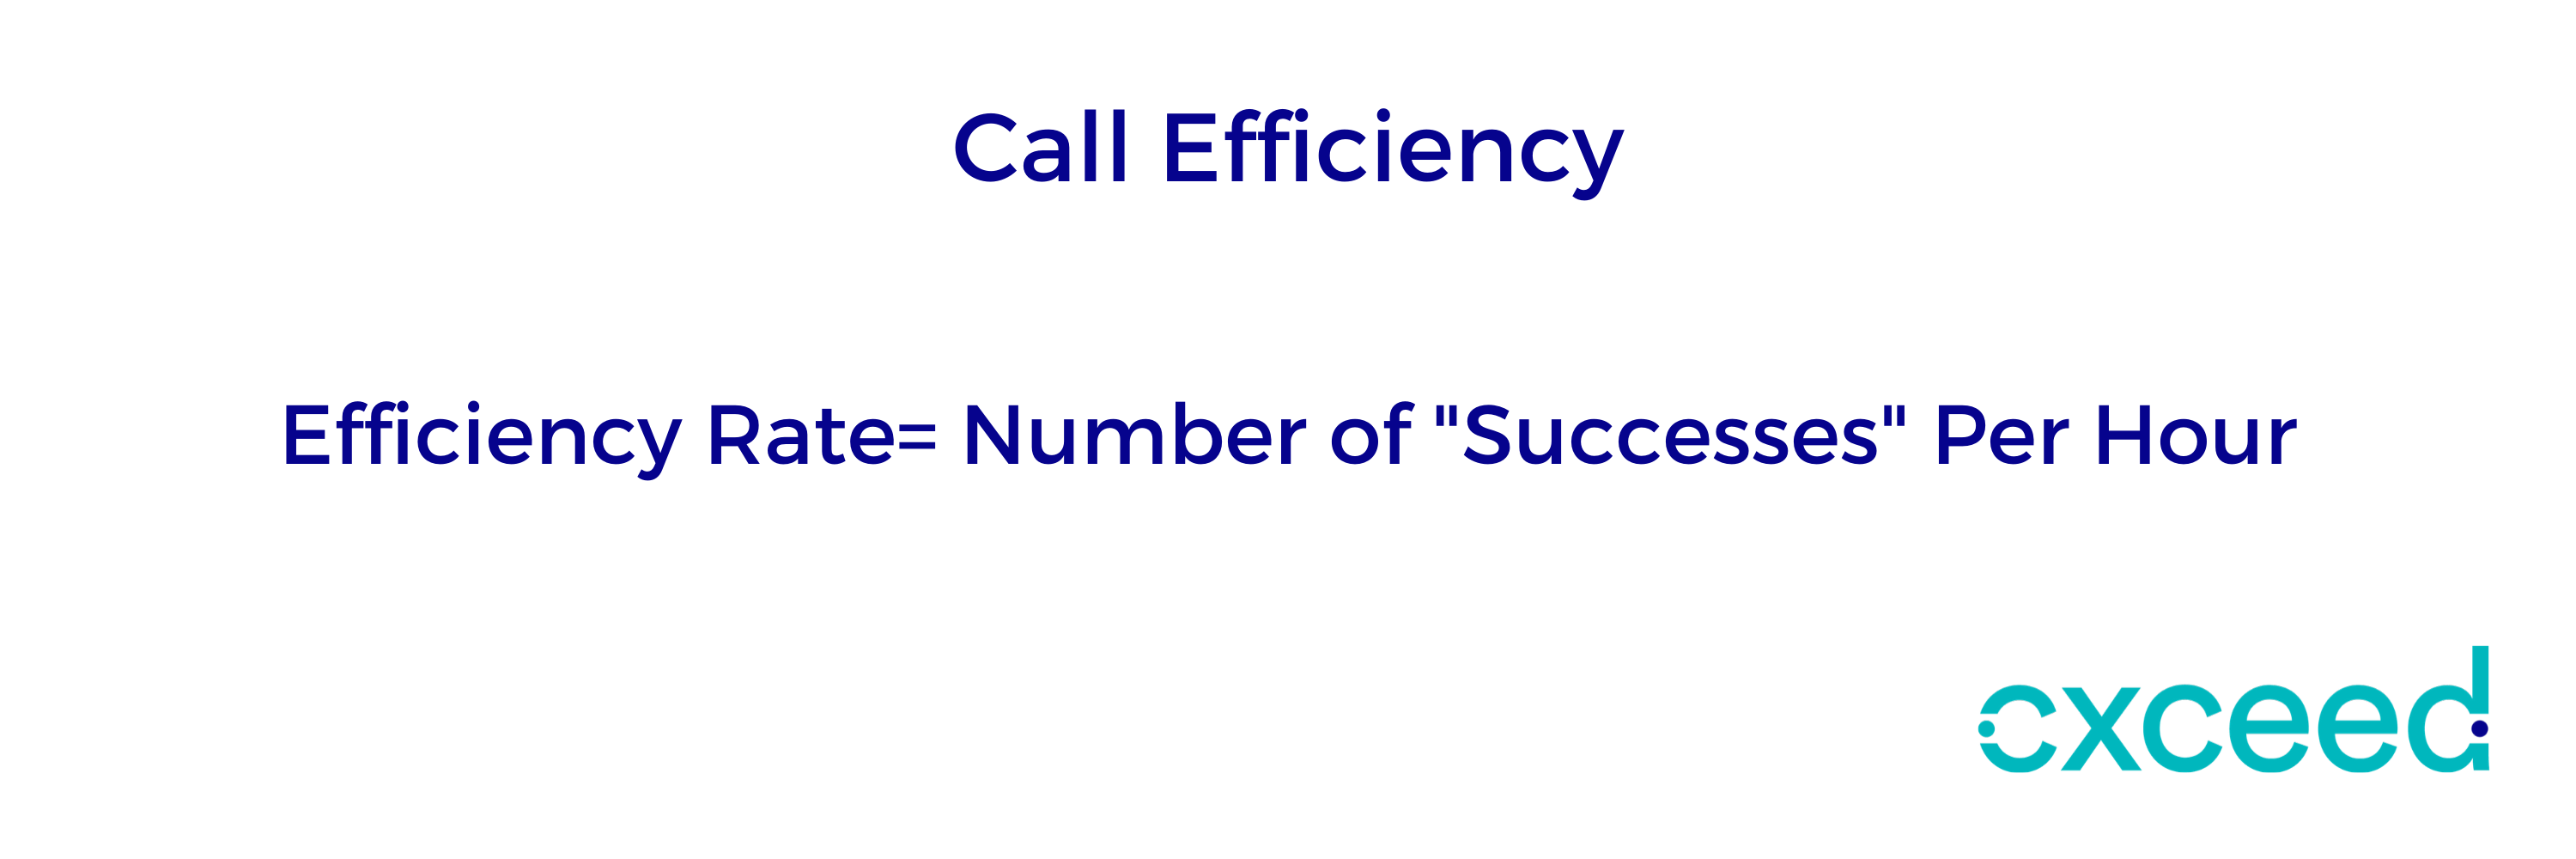 Call efficiency